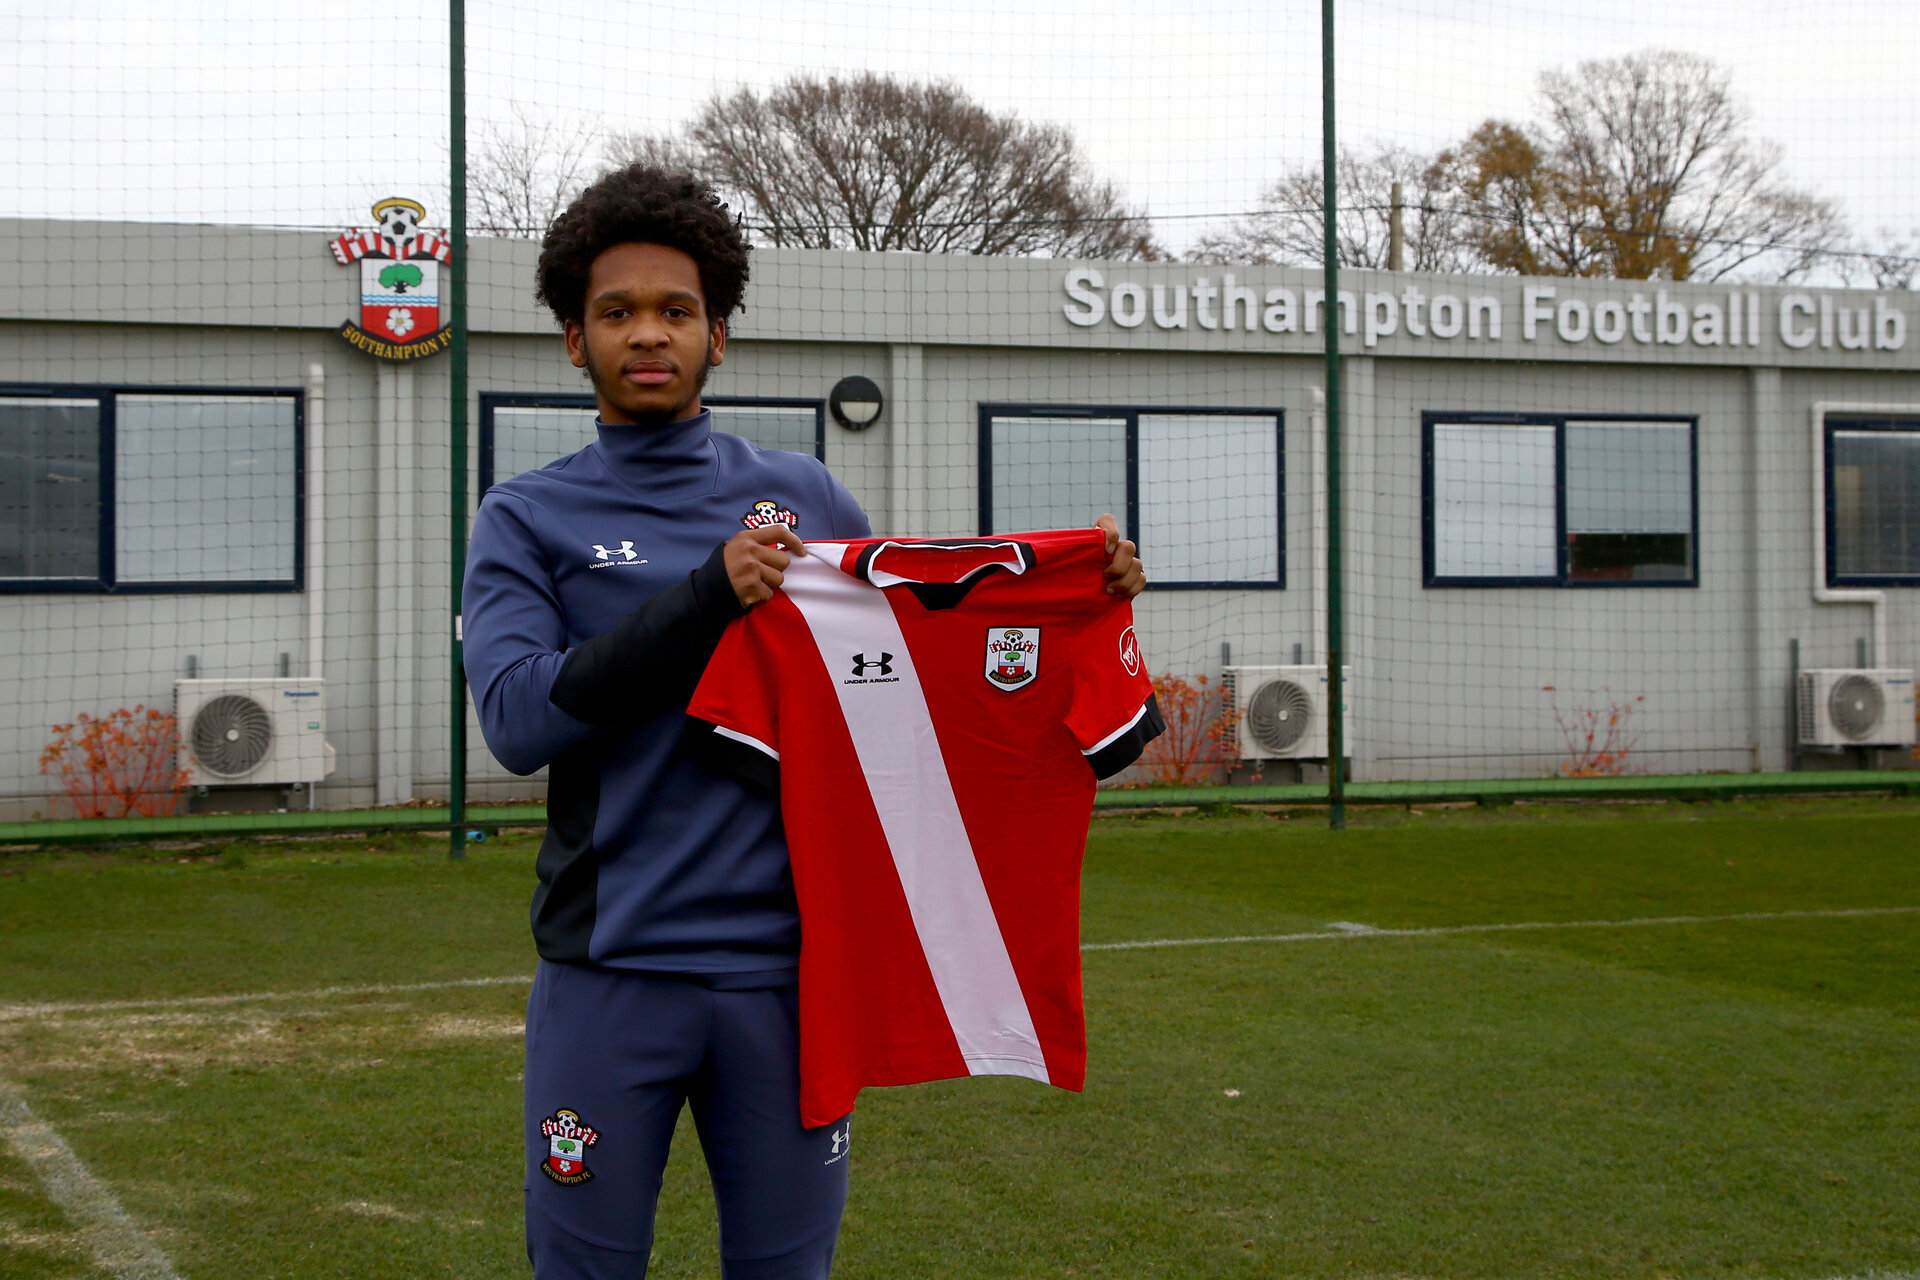 SOUTHAMPTON, ENGLAND - DECEMBER 09: Diamond Edwards signing his first professional contract photographed at Staplewood Training Ground on December 09, 2020 in Southampton, England. (Photo by Isabelle Field/Southampton FC via Getty Images)